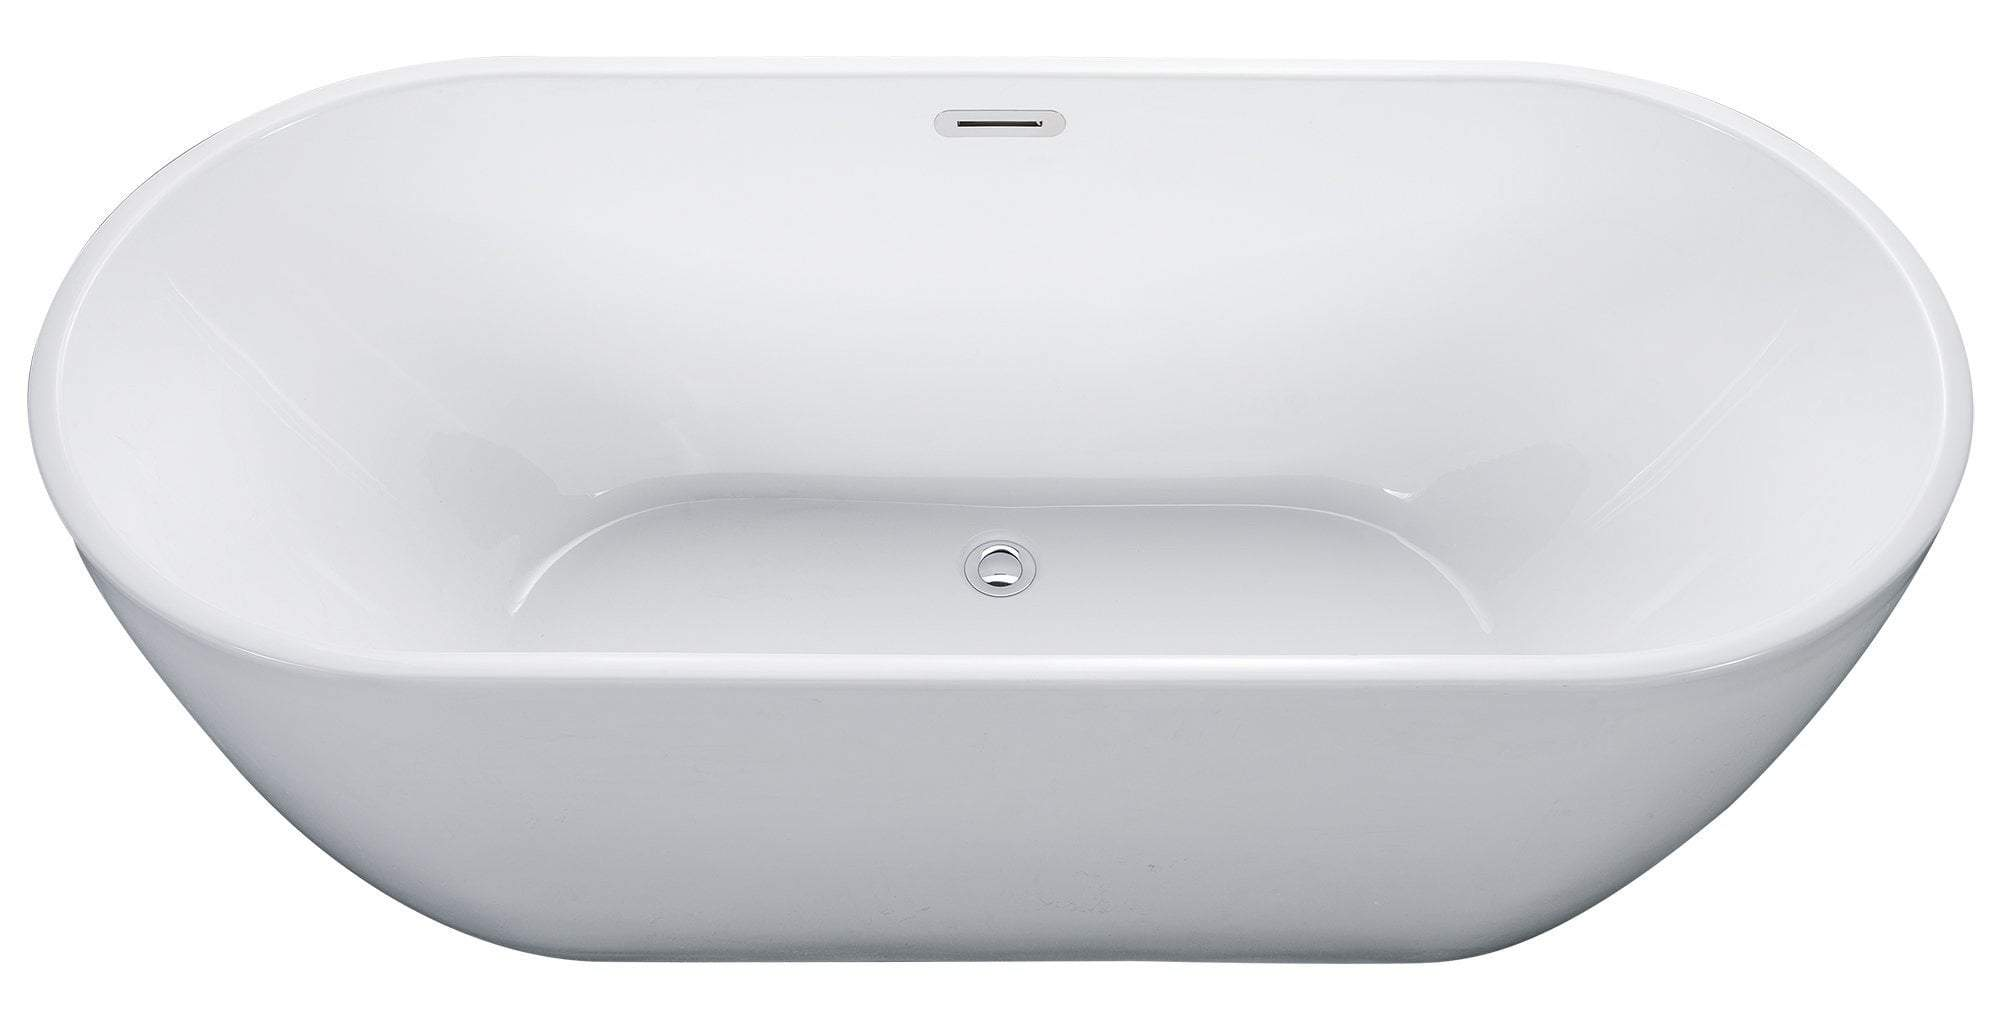 67 inch White Oval Acrylic Free Standing Soaking Bathtub